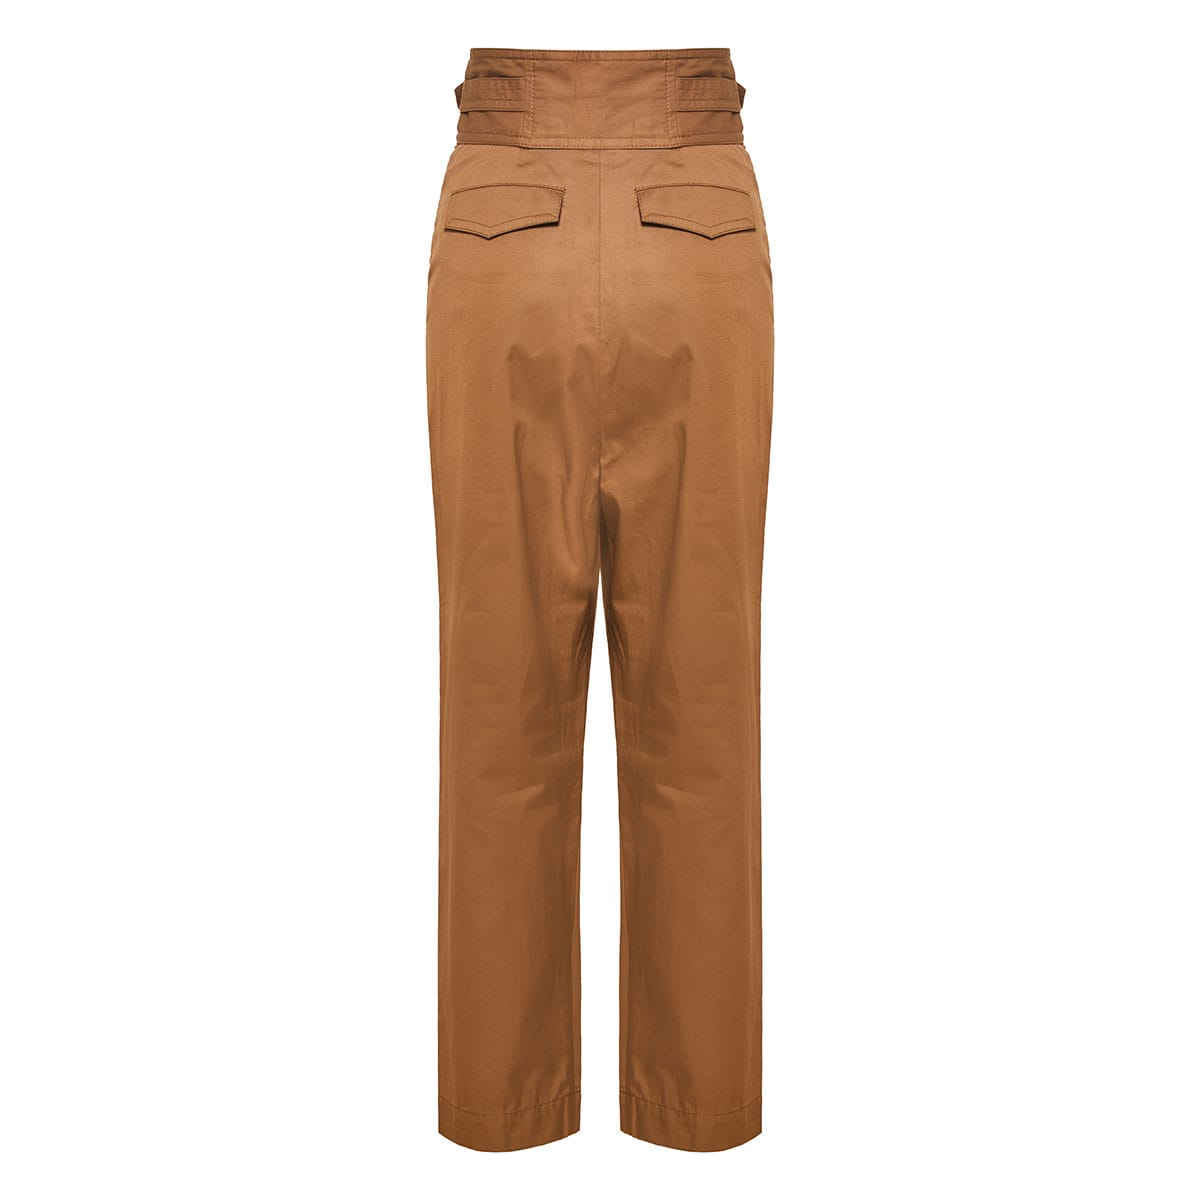 Ladybeetle high-waist cropped trousers